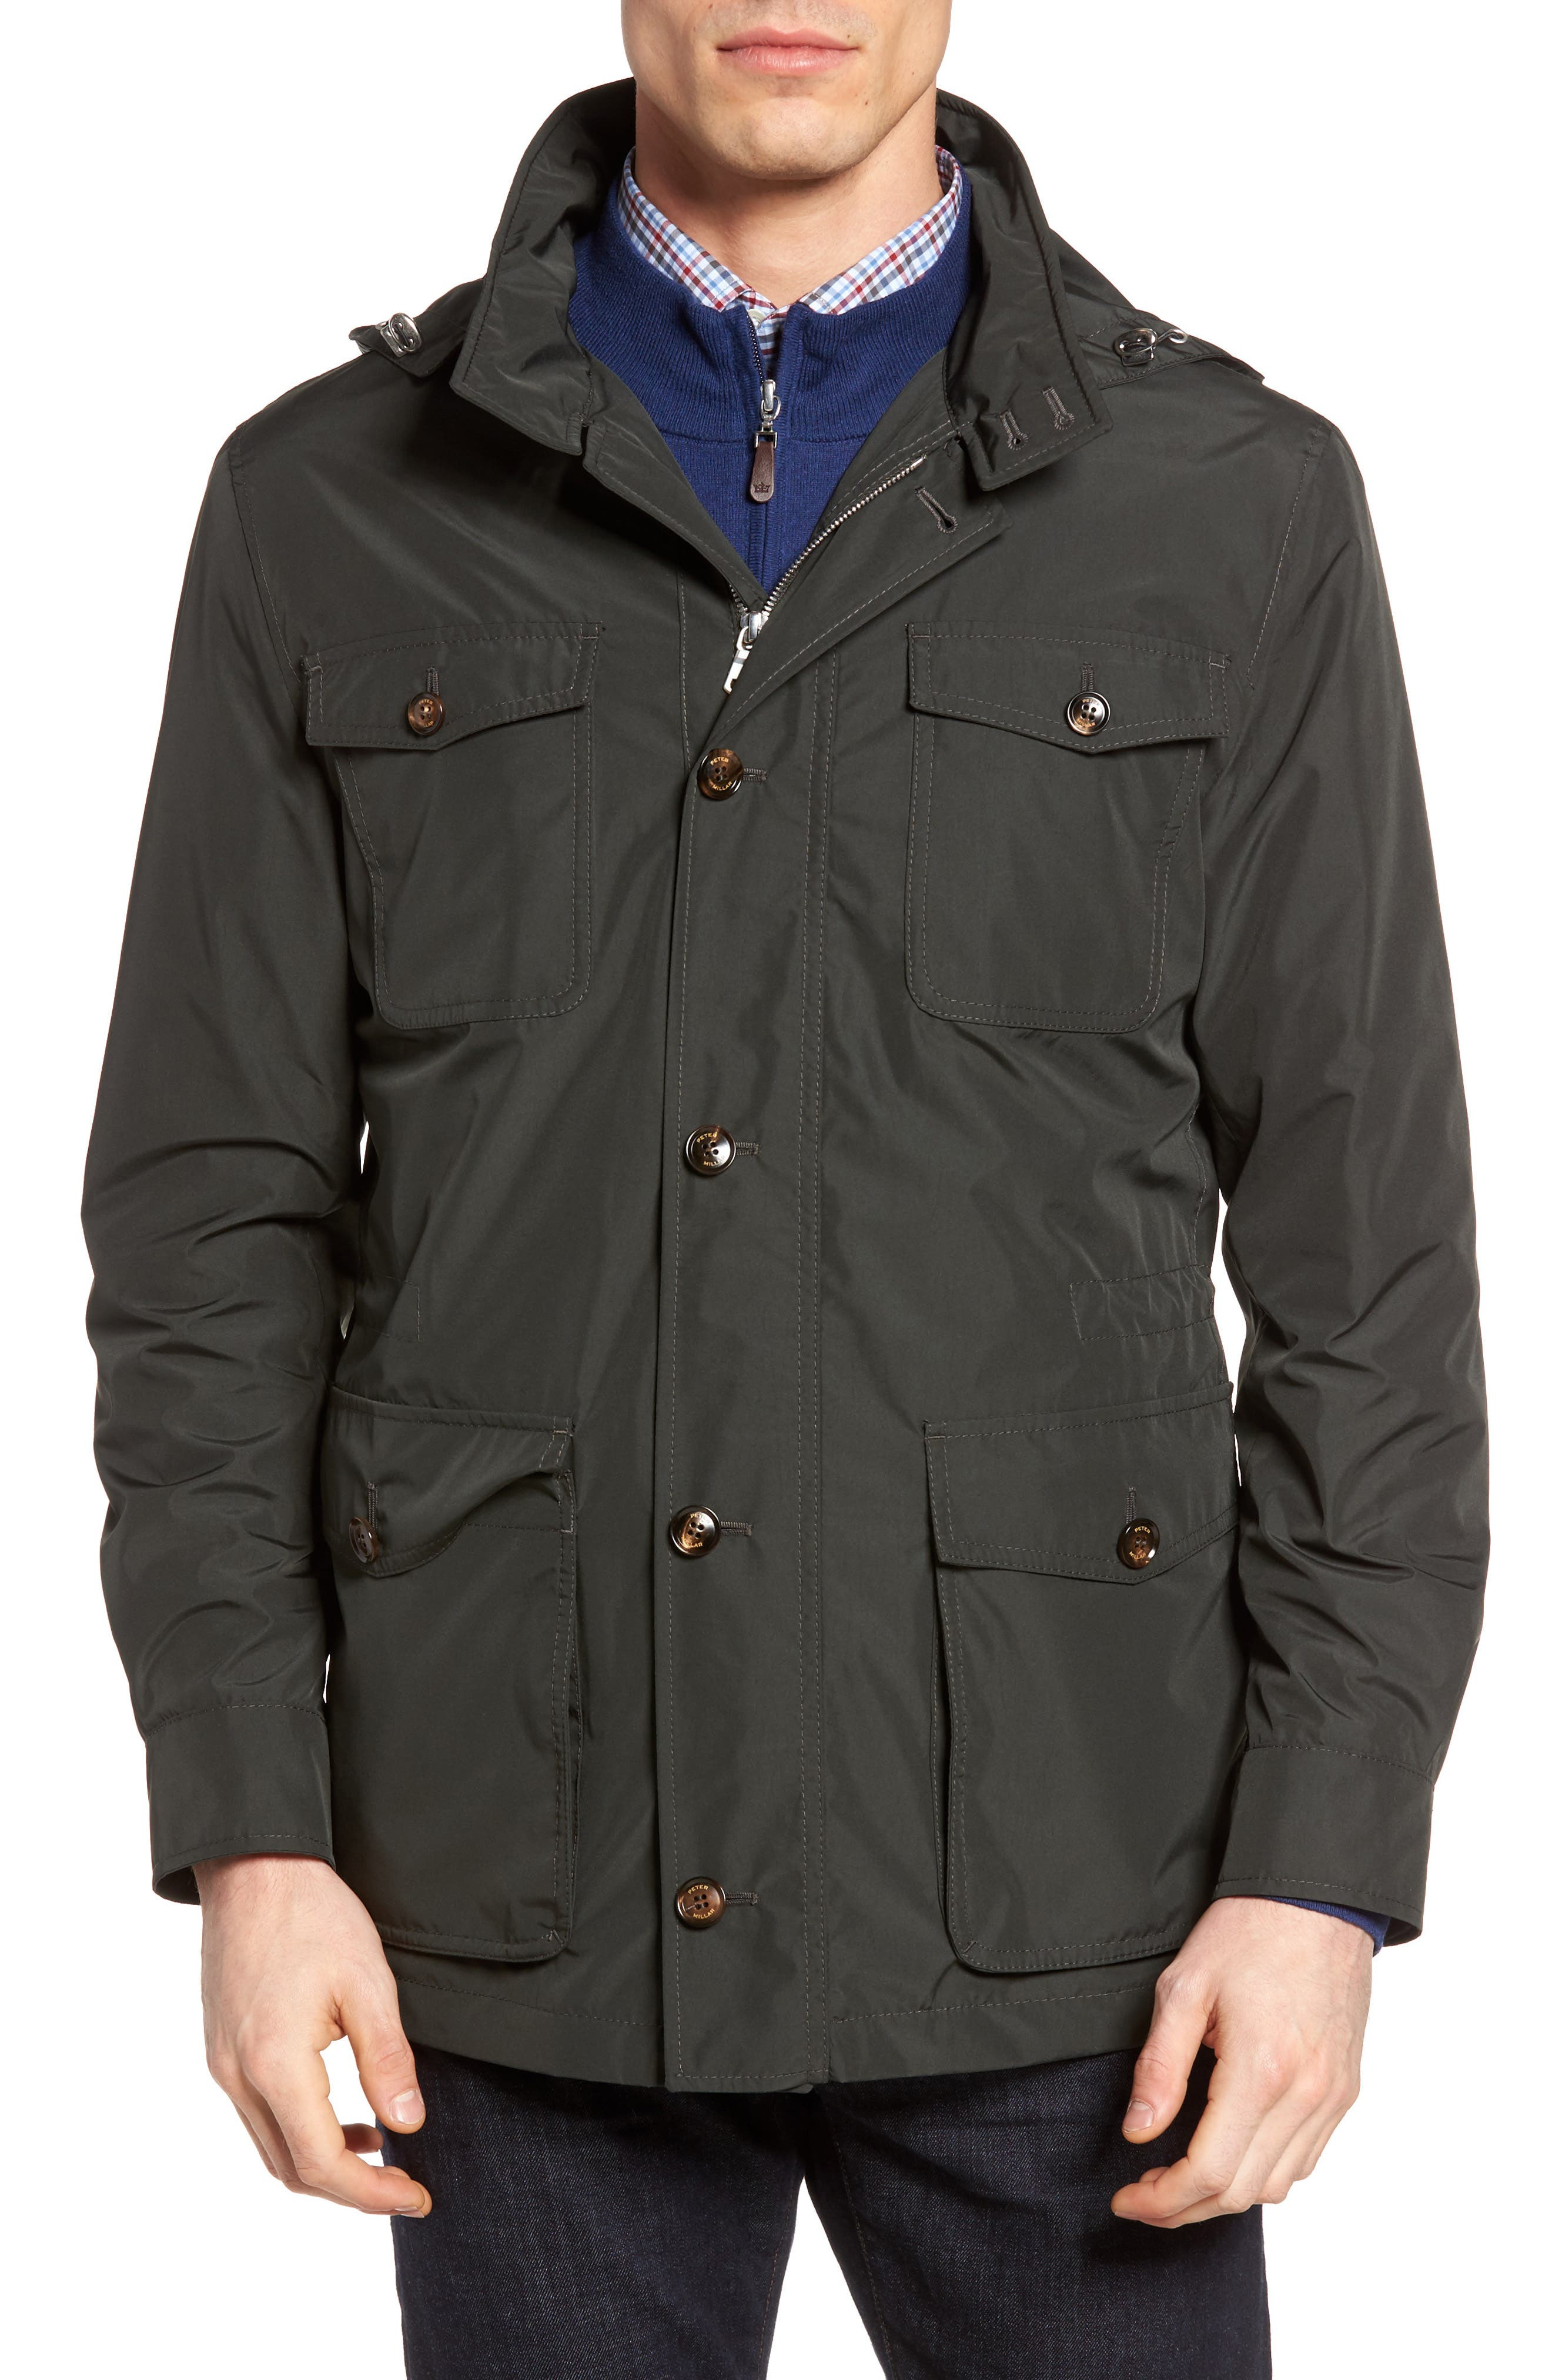 Peter Millar All Weather Discovery Jacket,                             Main thumbnail 1, color,                             359